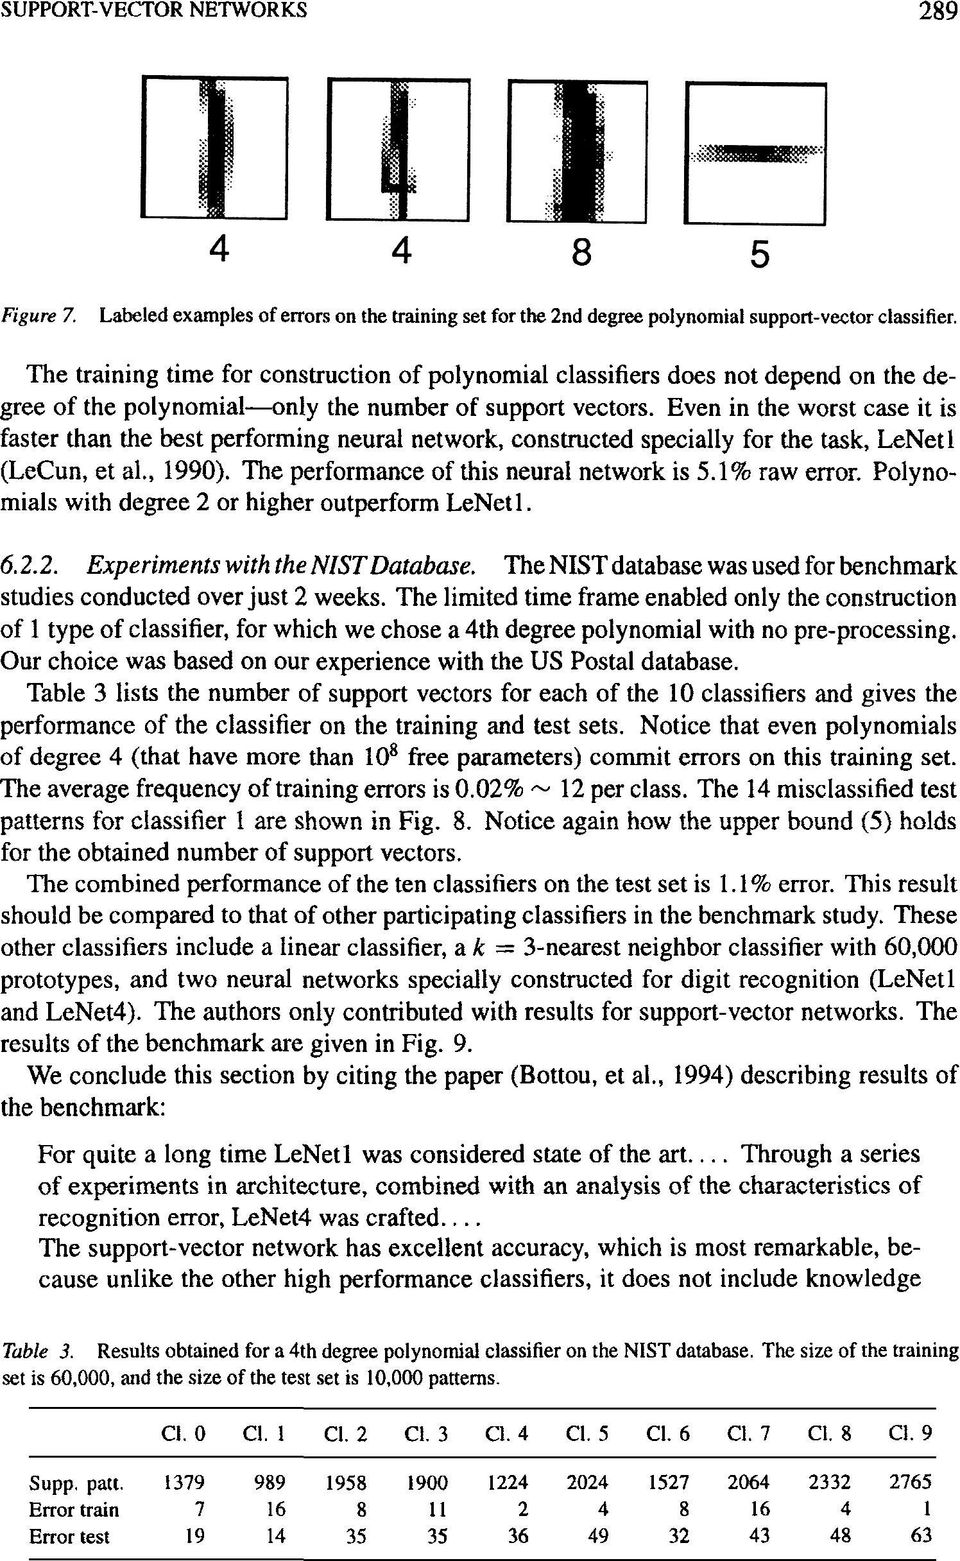 Even in the worst case it is faster than the best performing neural network, constructed specially for the task, LeNetl (LeCun, et al., 1990). The performance of this neural network is 5.1% raw error.